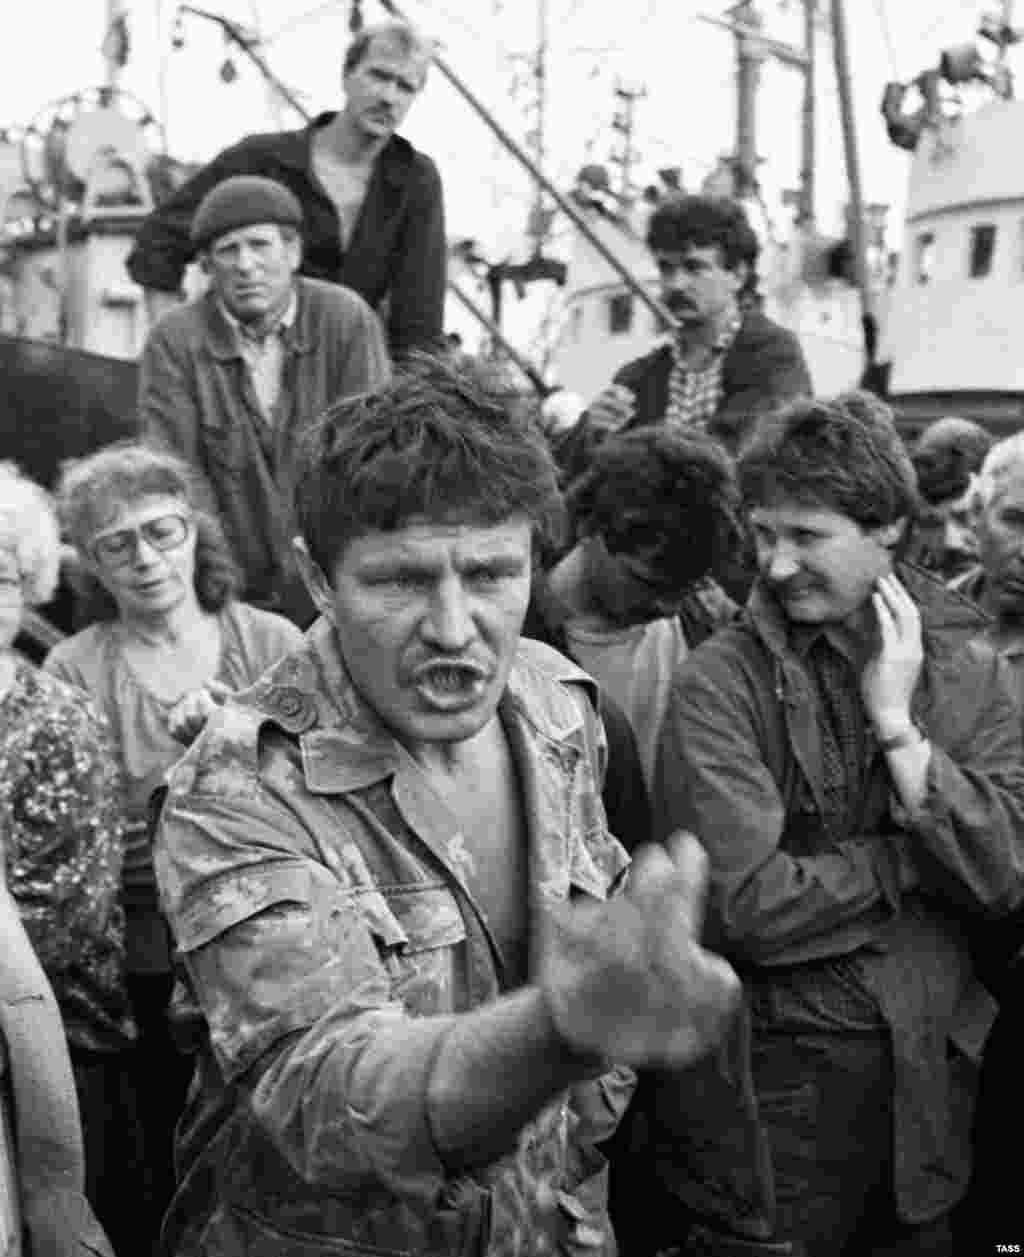 Russian fishermen at a rally defending Russia's possession of the southern Kuriles in the early '90s. A 2016 poll showed 78 percent of Russian mainlanders were opposed to returning the disputed islands to Japan.